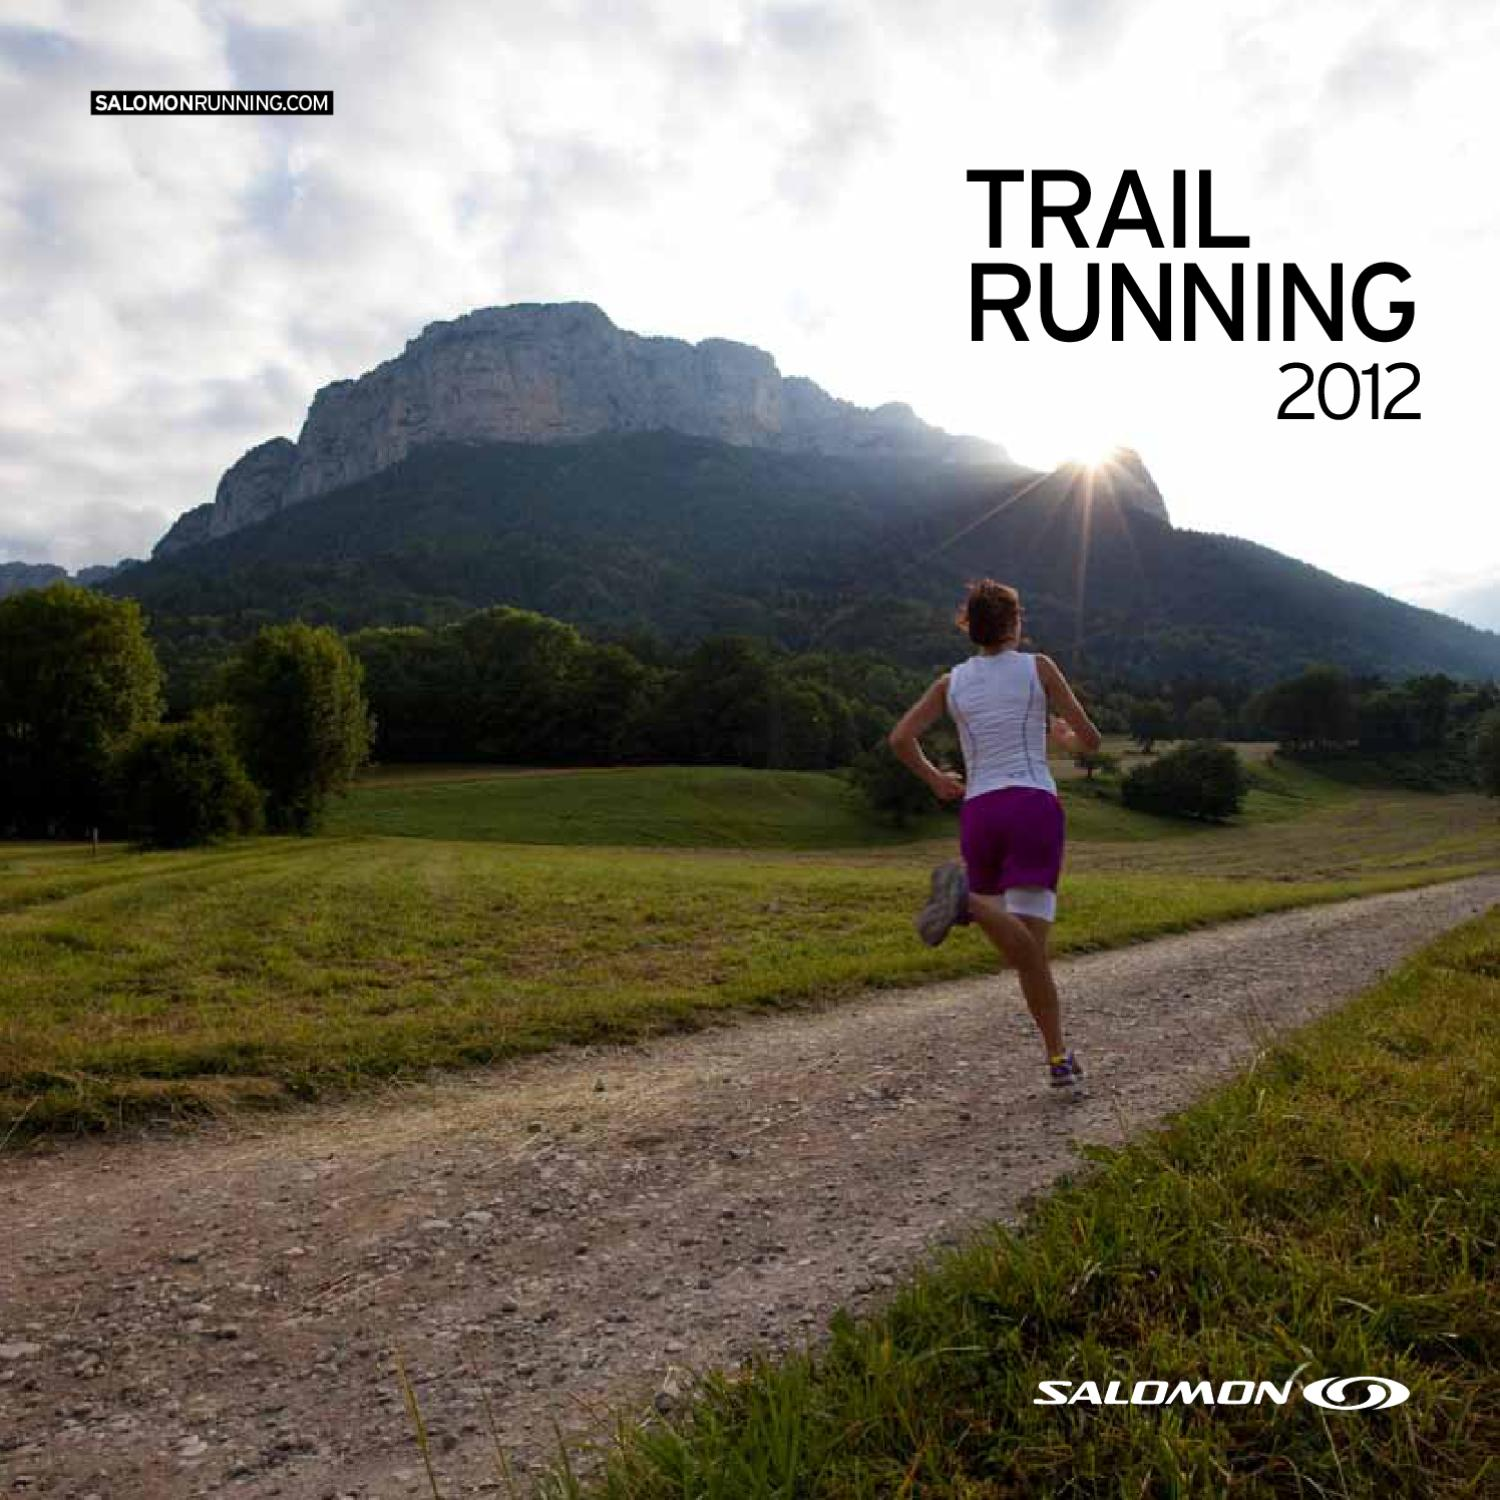 cd69b4dc25f9 Salomon Trail Running Brochure by MountainBlogIT - issuu